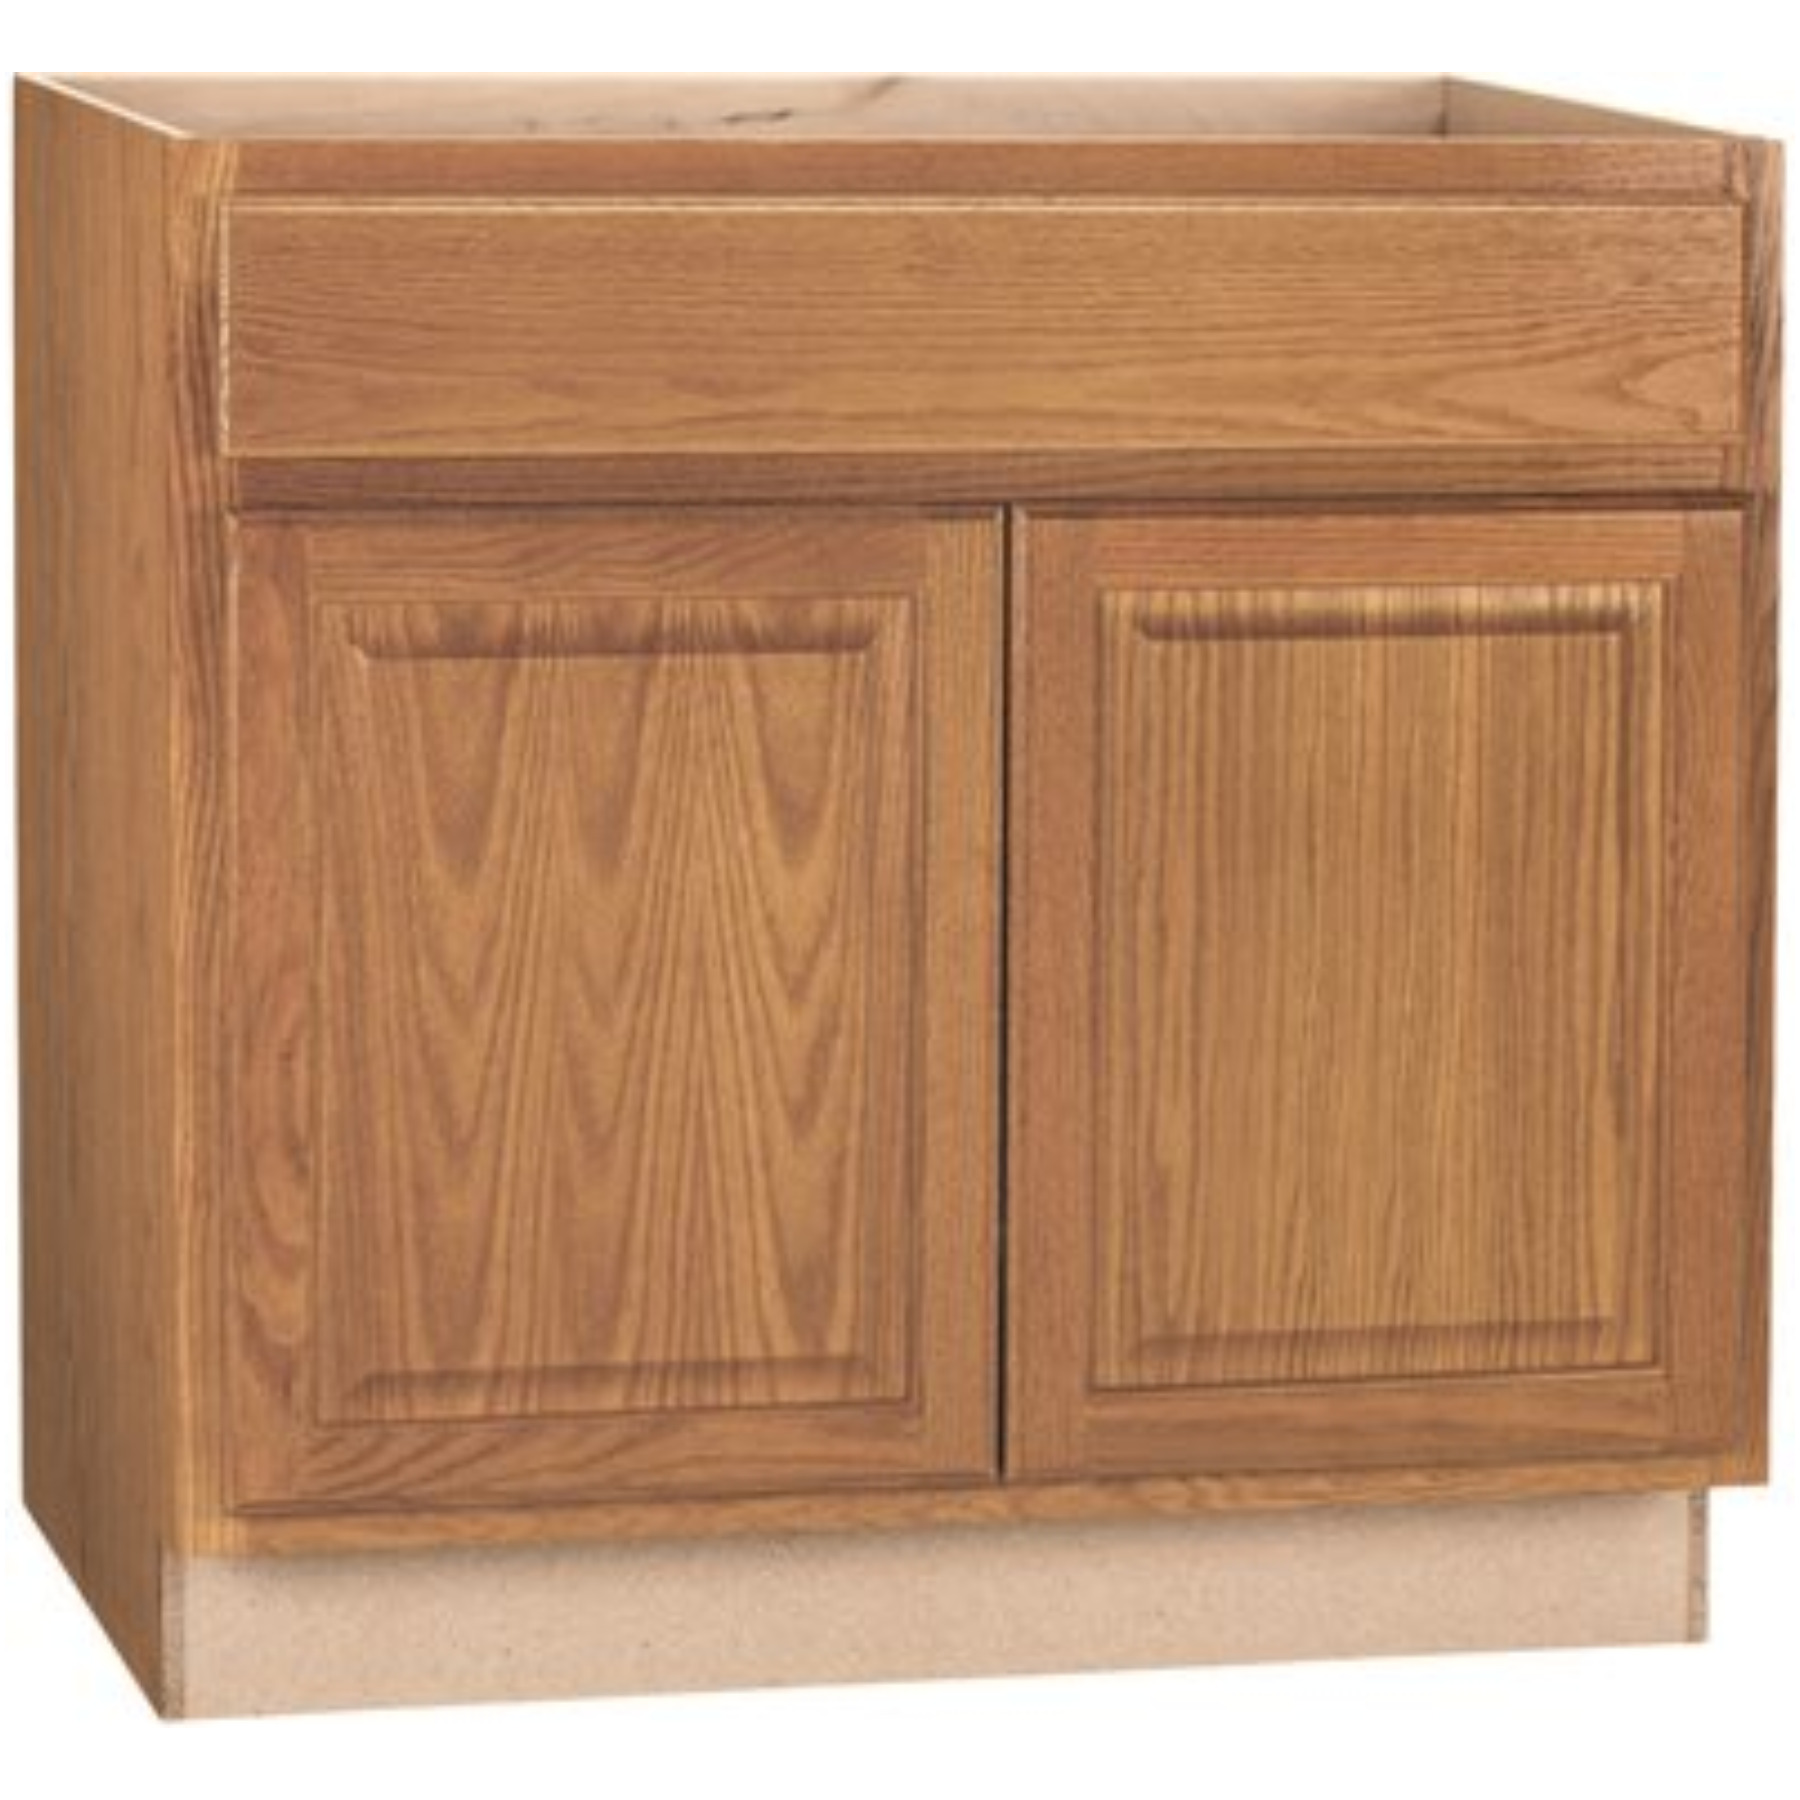 RSI HOME PRODUCTS ANDOVER SHAKER ADA SINK BASE CABINET, JAVA, 36 IN.